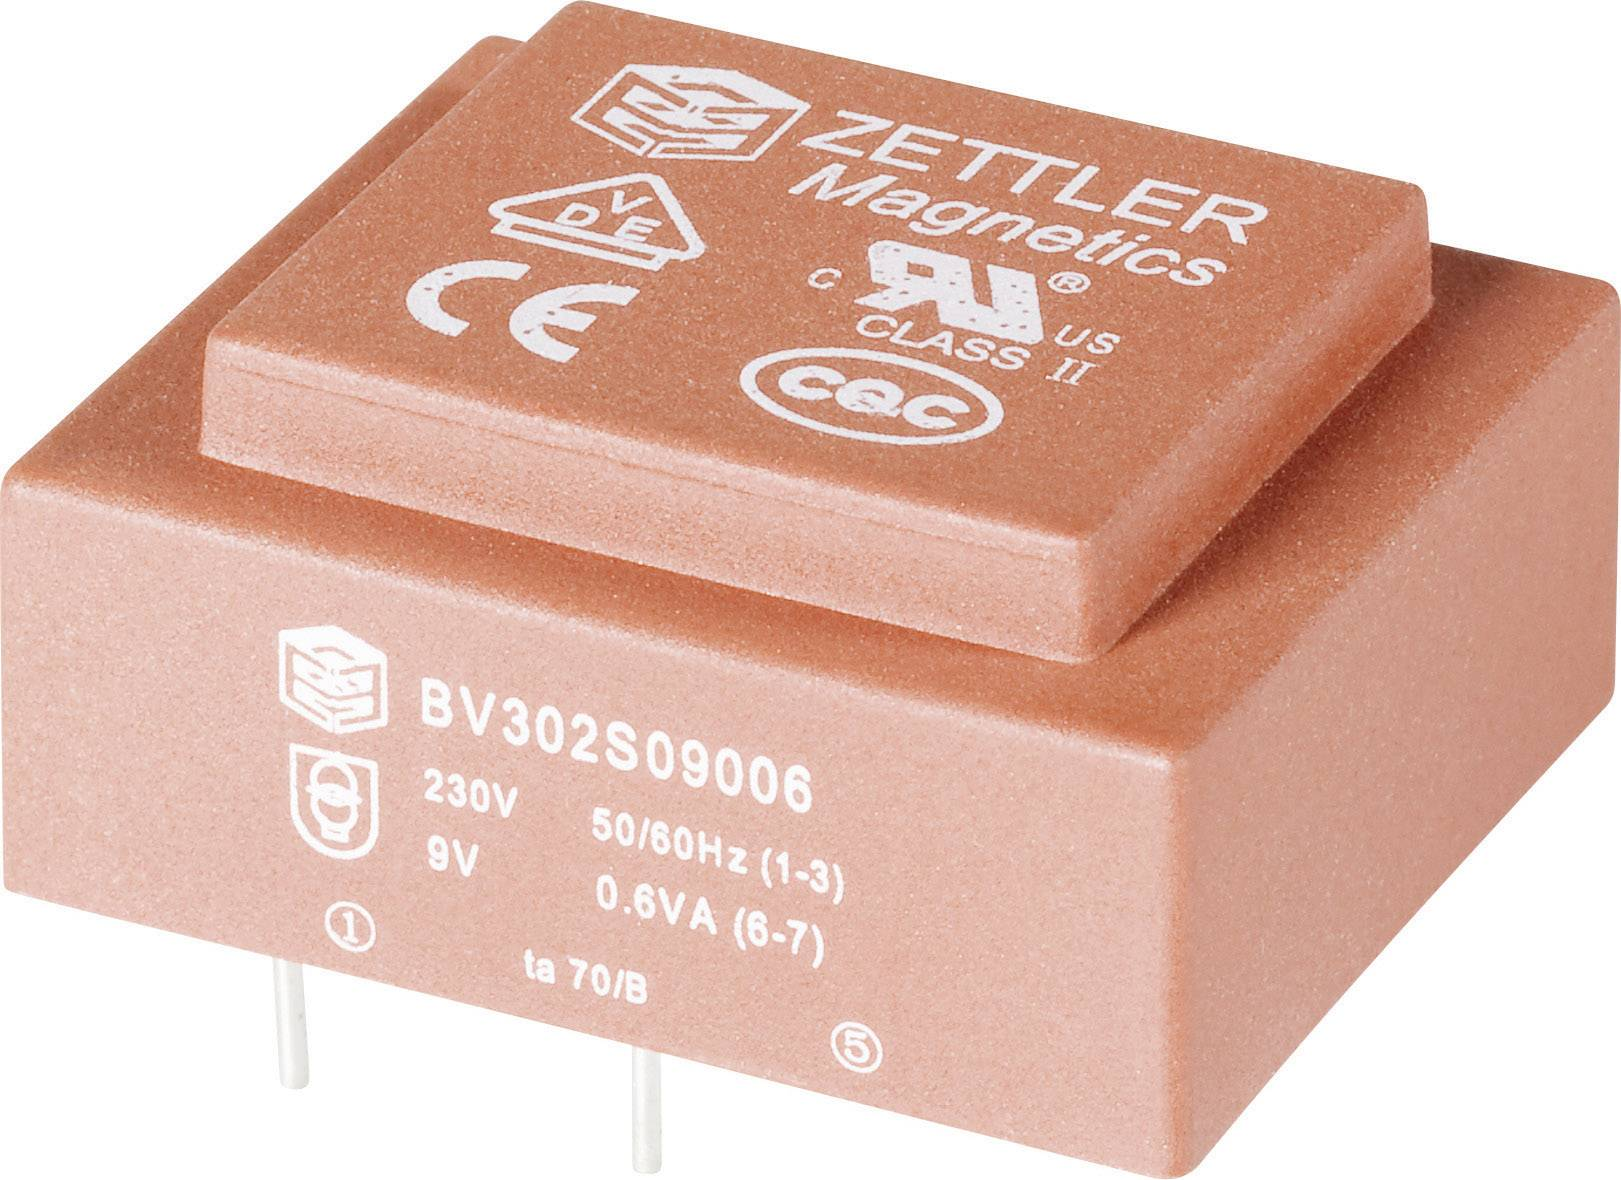 Transformátor do DPS Zettler Magnetics El30, 230 V/18 V, 33 mA, 1 VA